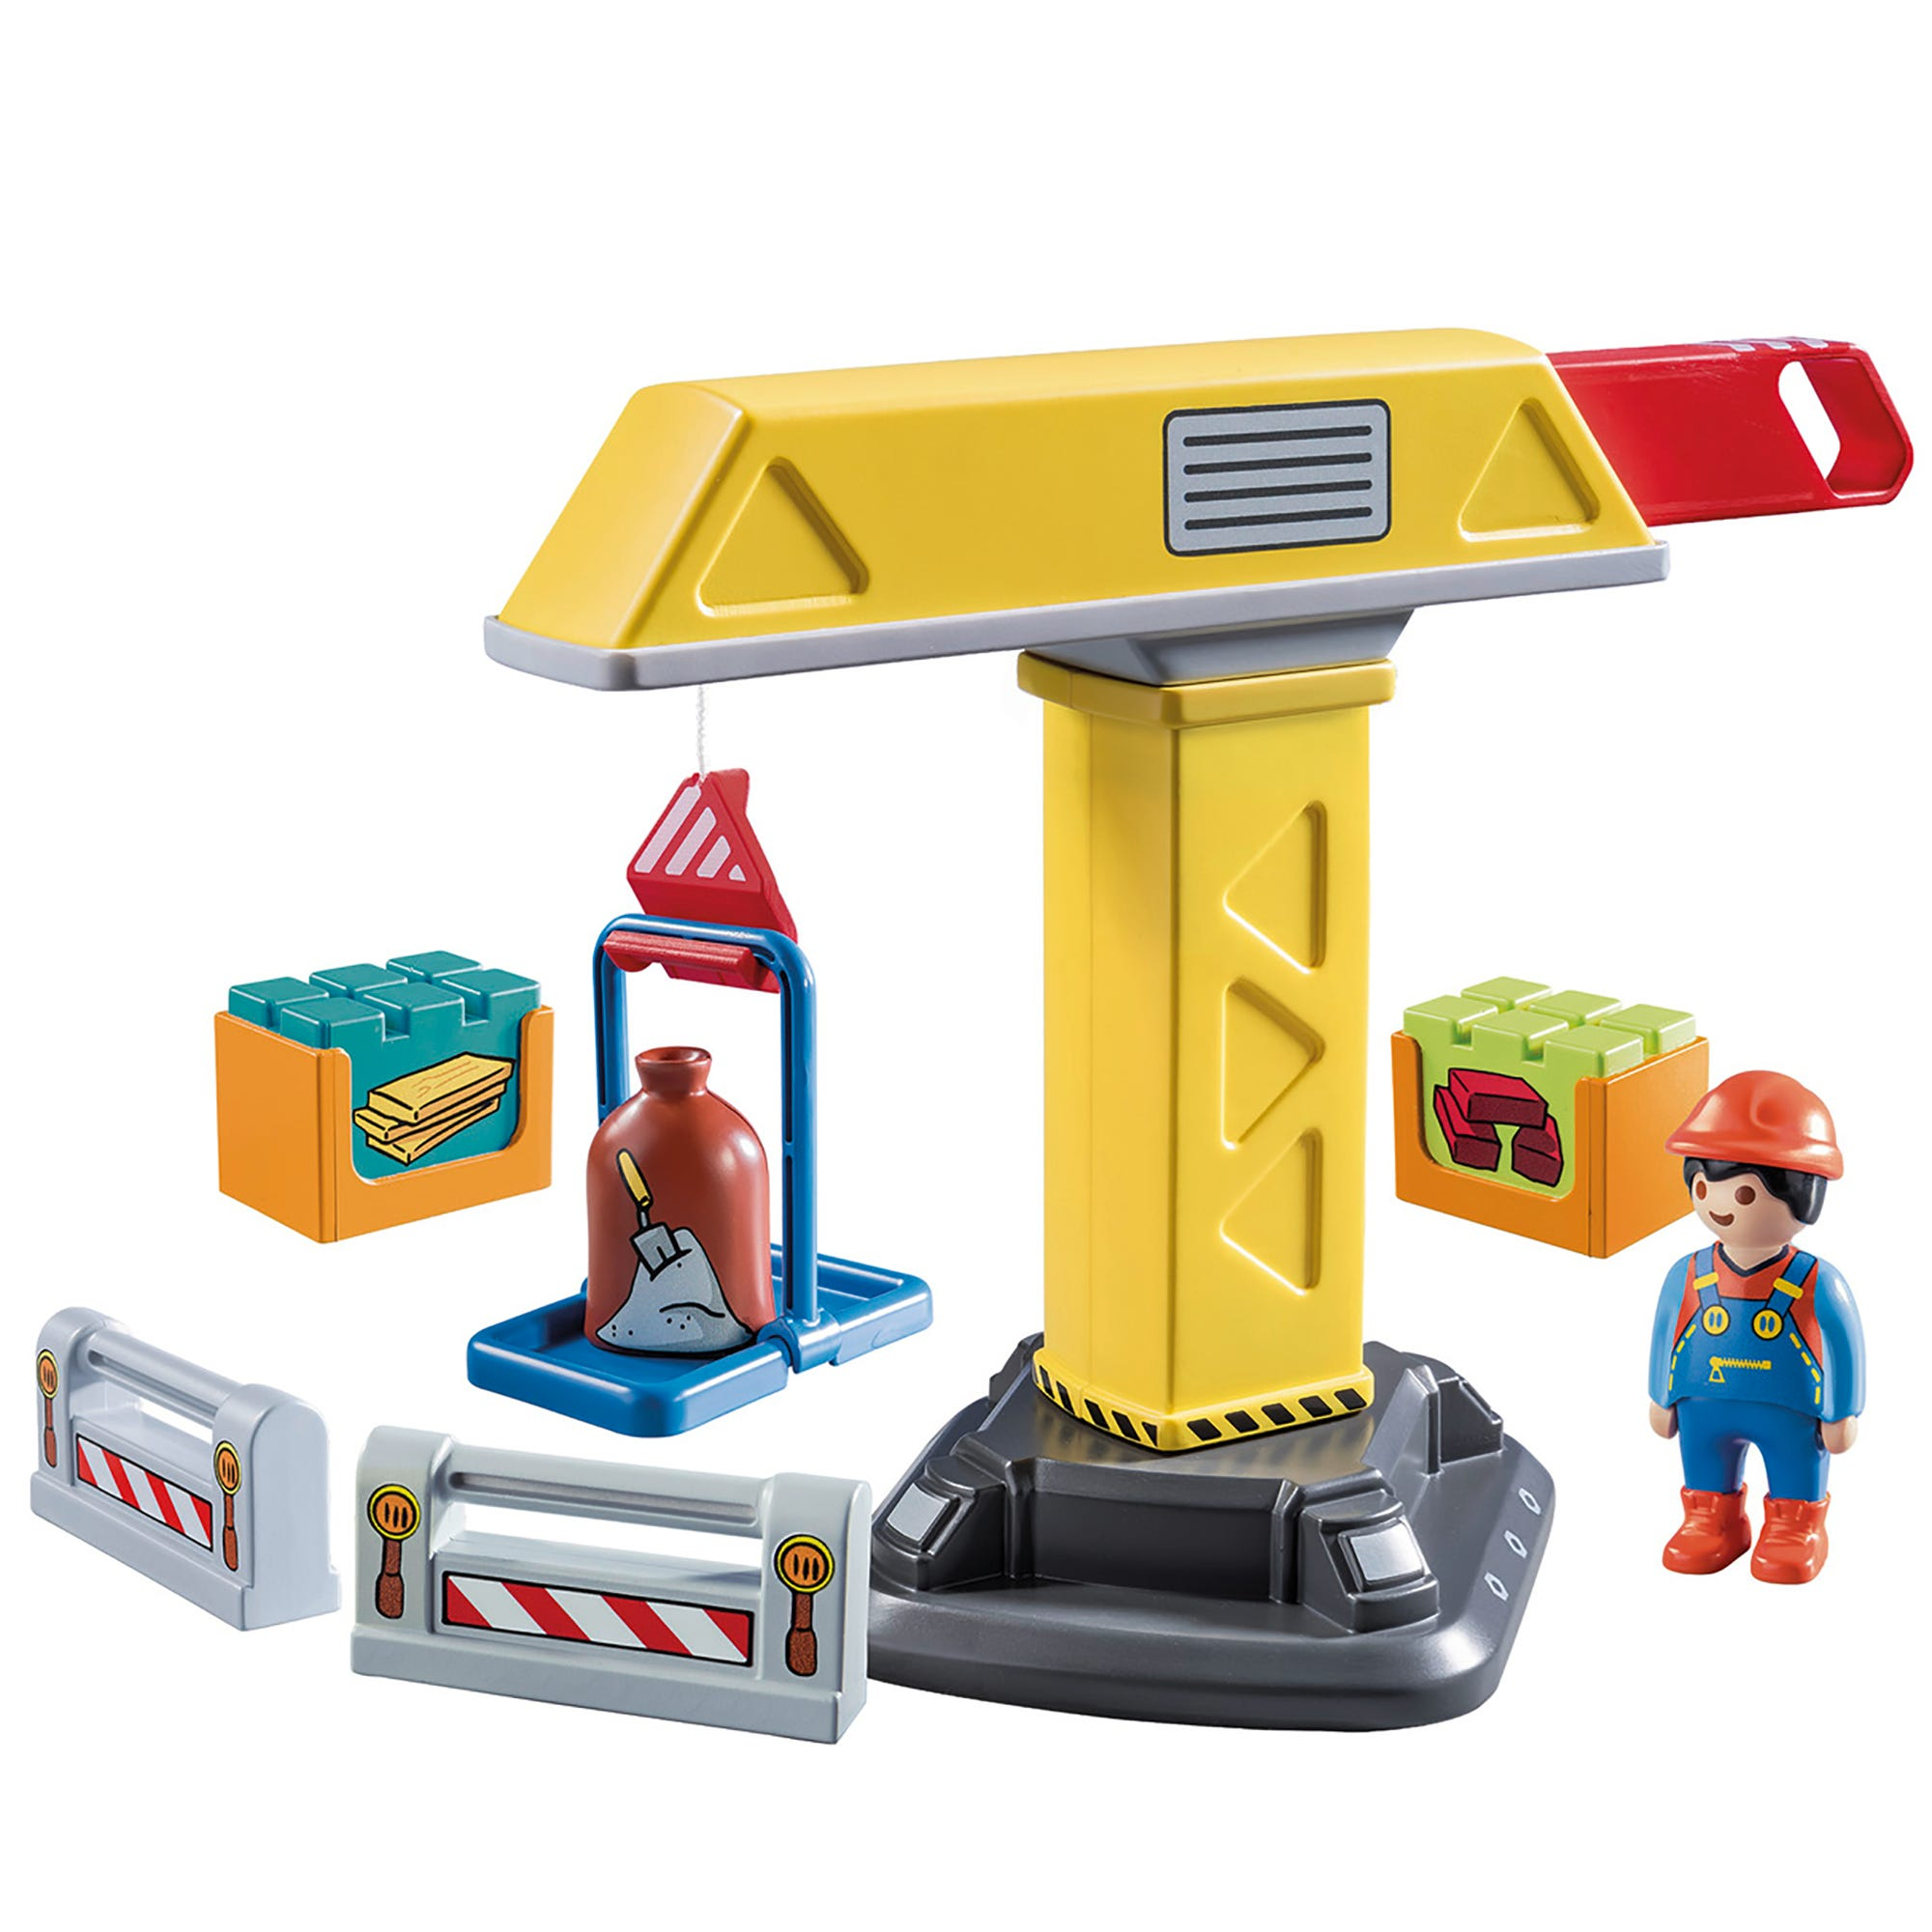 Playmobil 70165 1.2.3 Construction Crane